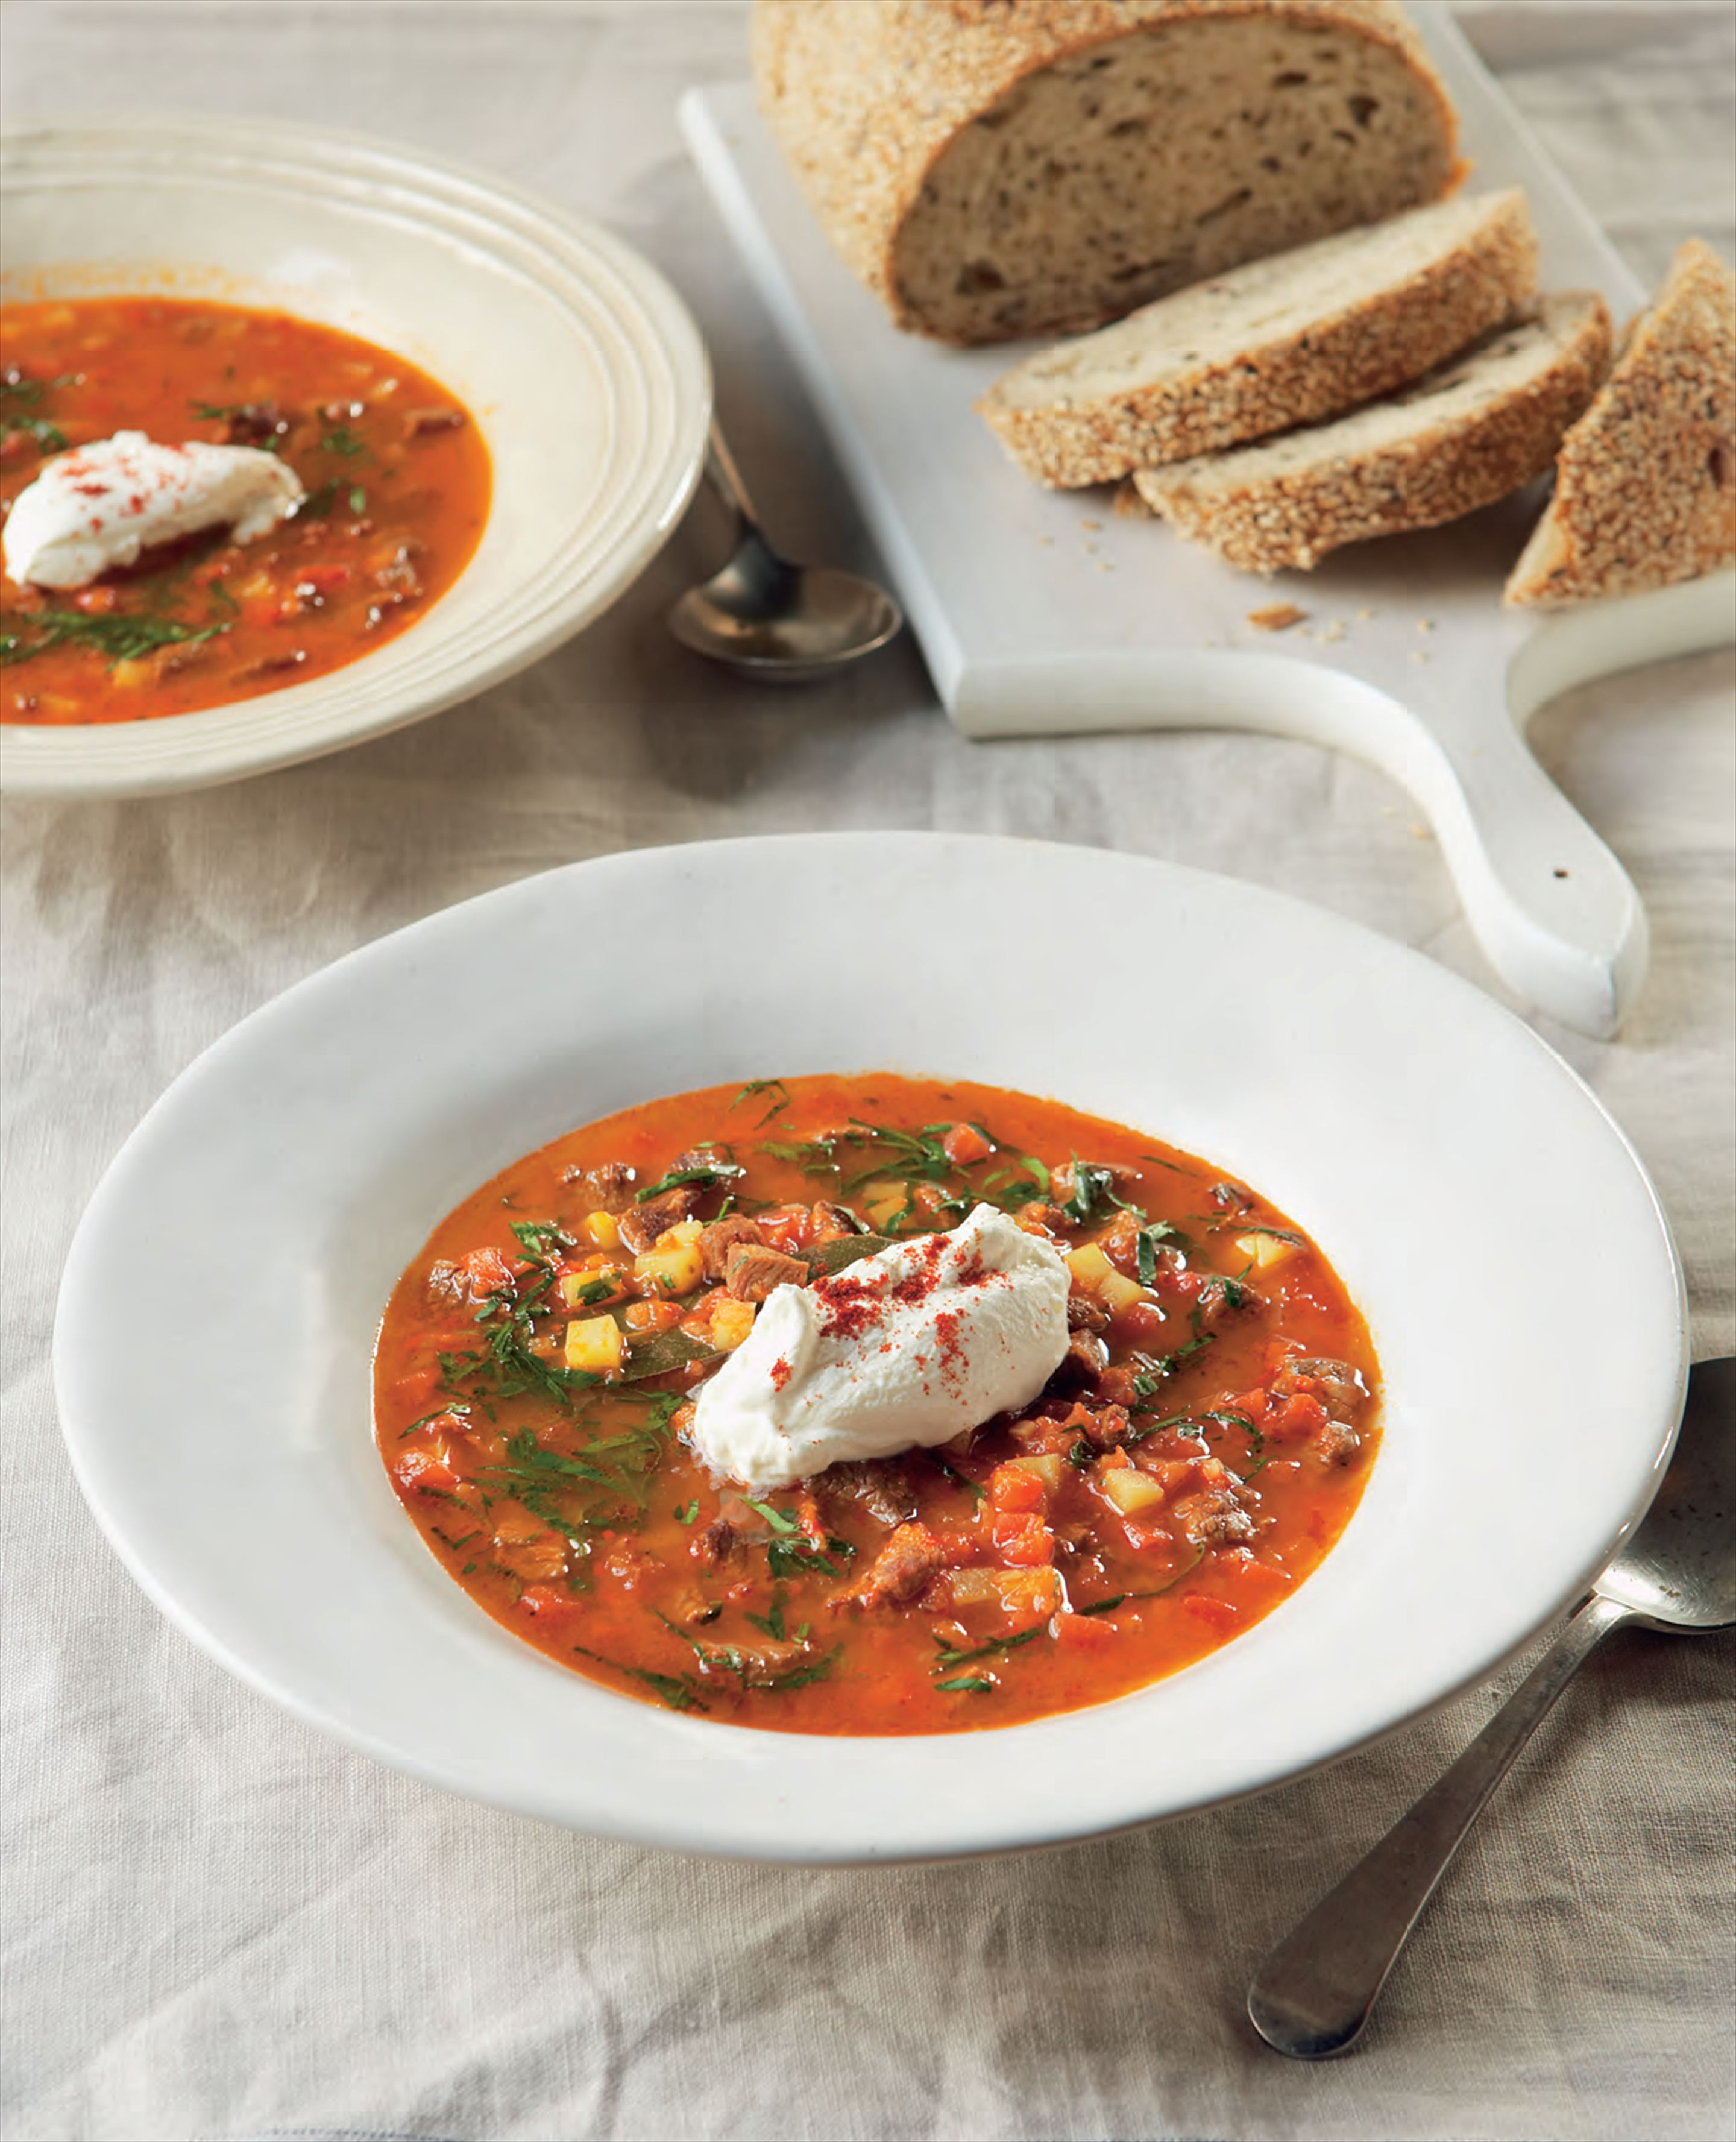 Hungarian goulash soup with sour cream and chives